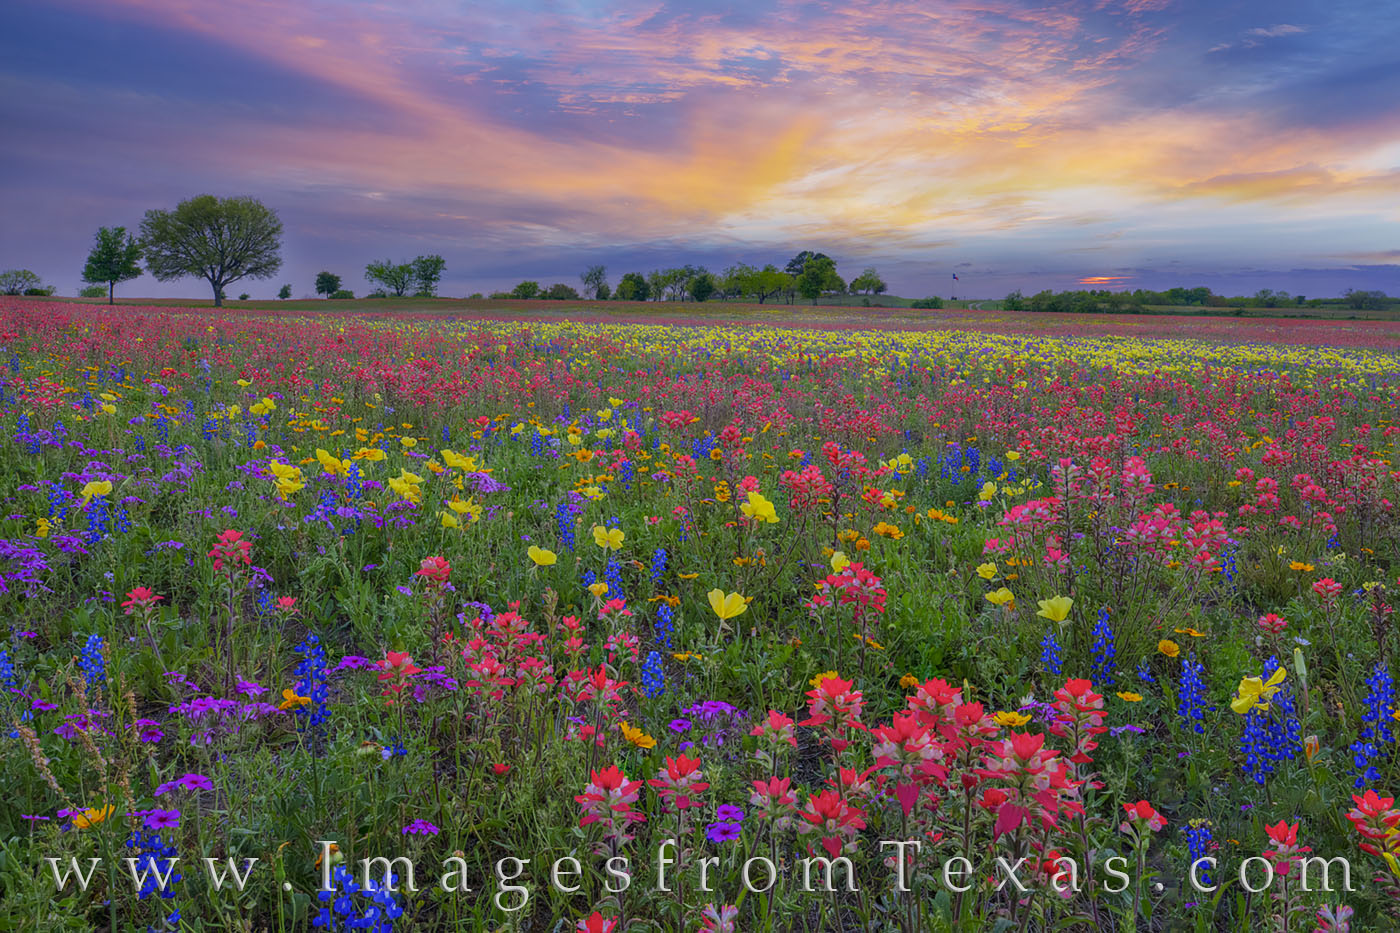 paintbrush, bluebonnets, buttercups, primrose, phlox, wildflowers, sunset, new berlin, church road, san antonio, colors, evening, texas wildflowers, photo